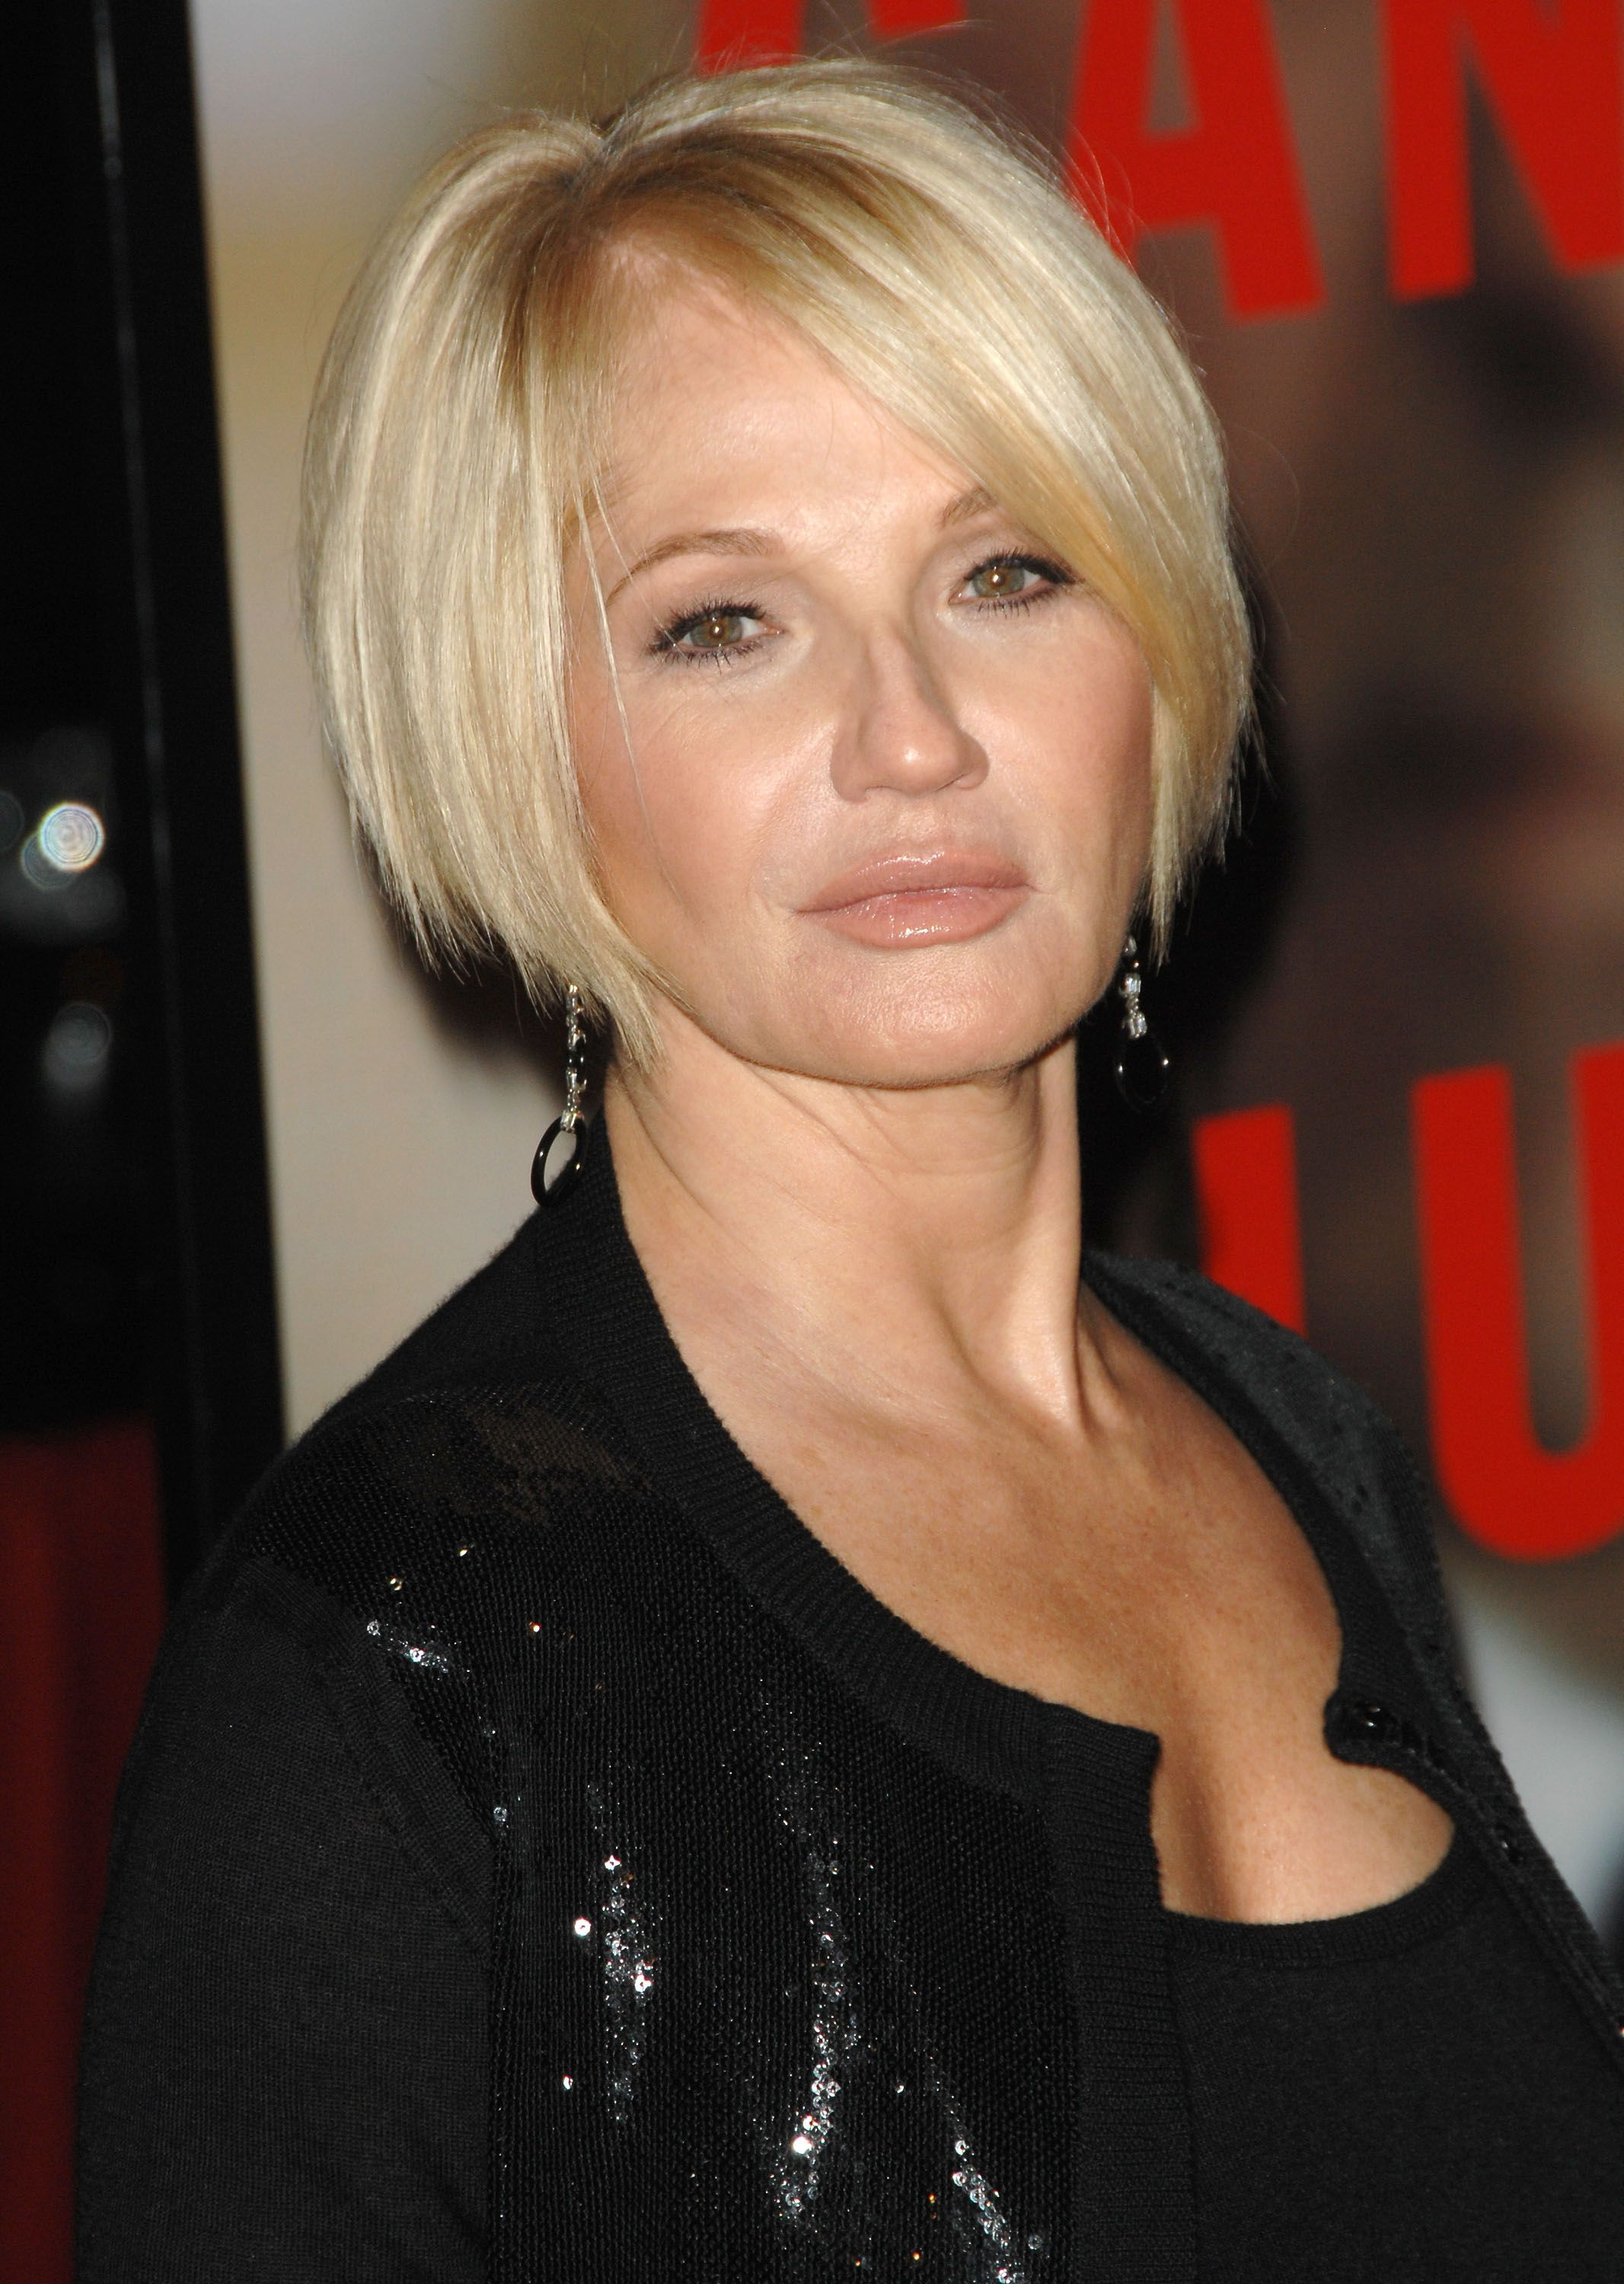 Ellen Barkin Hospitalized After Choking On Her Lunch Hairstyles